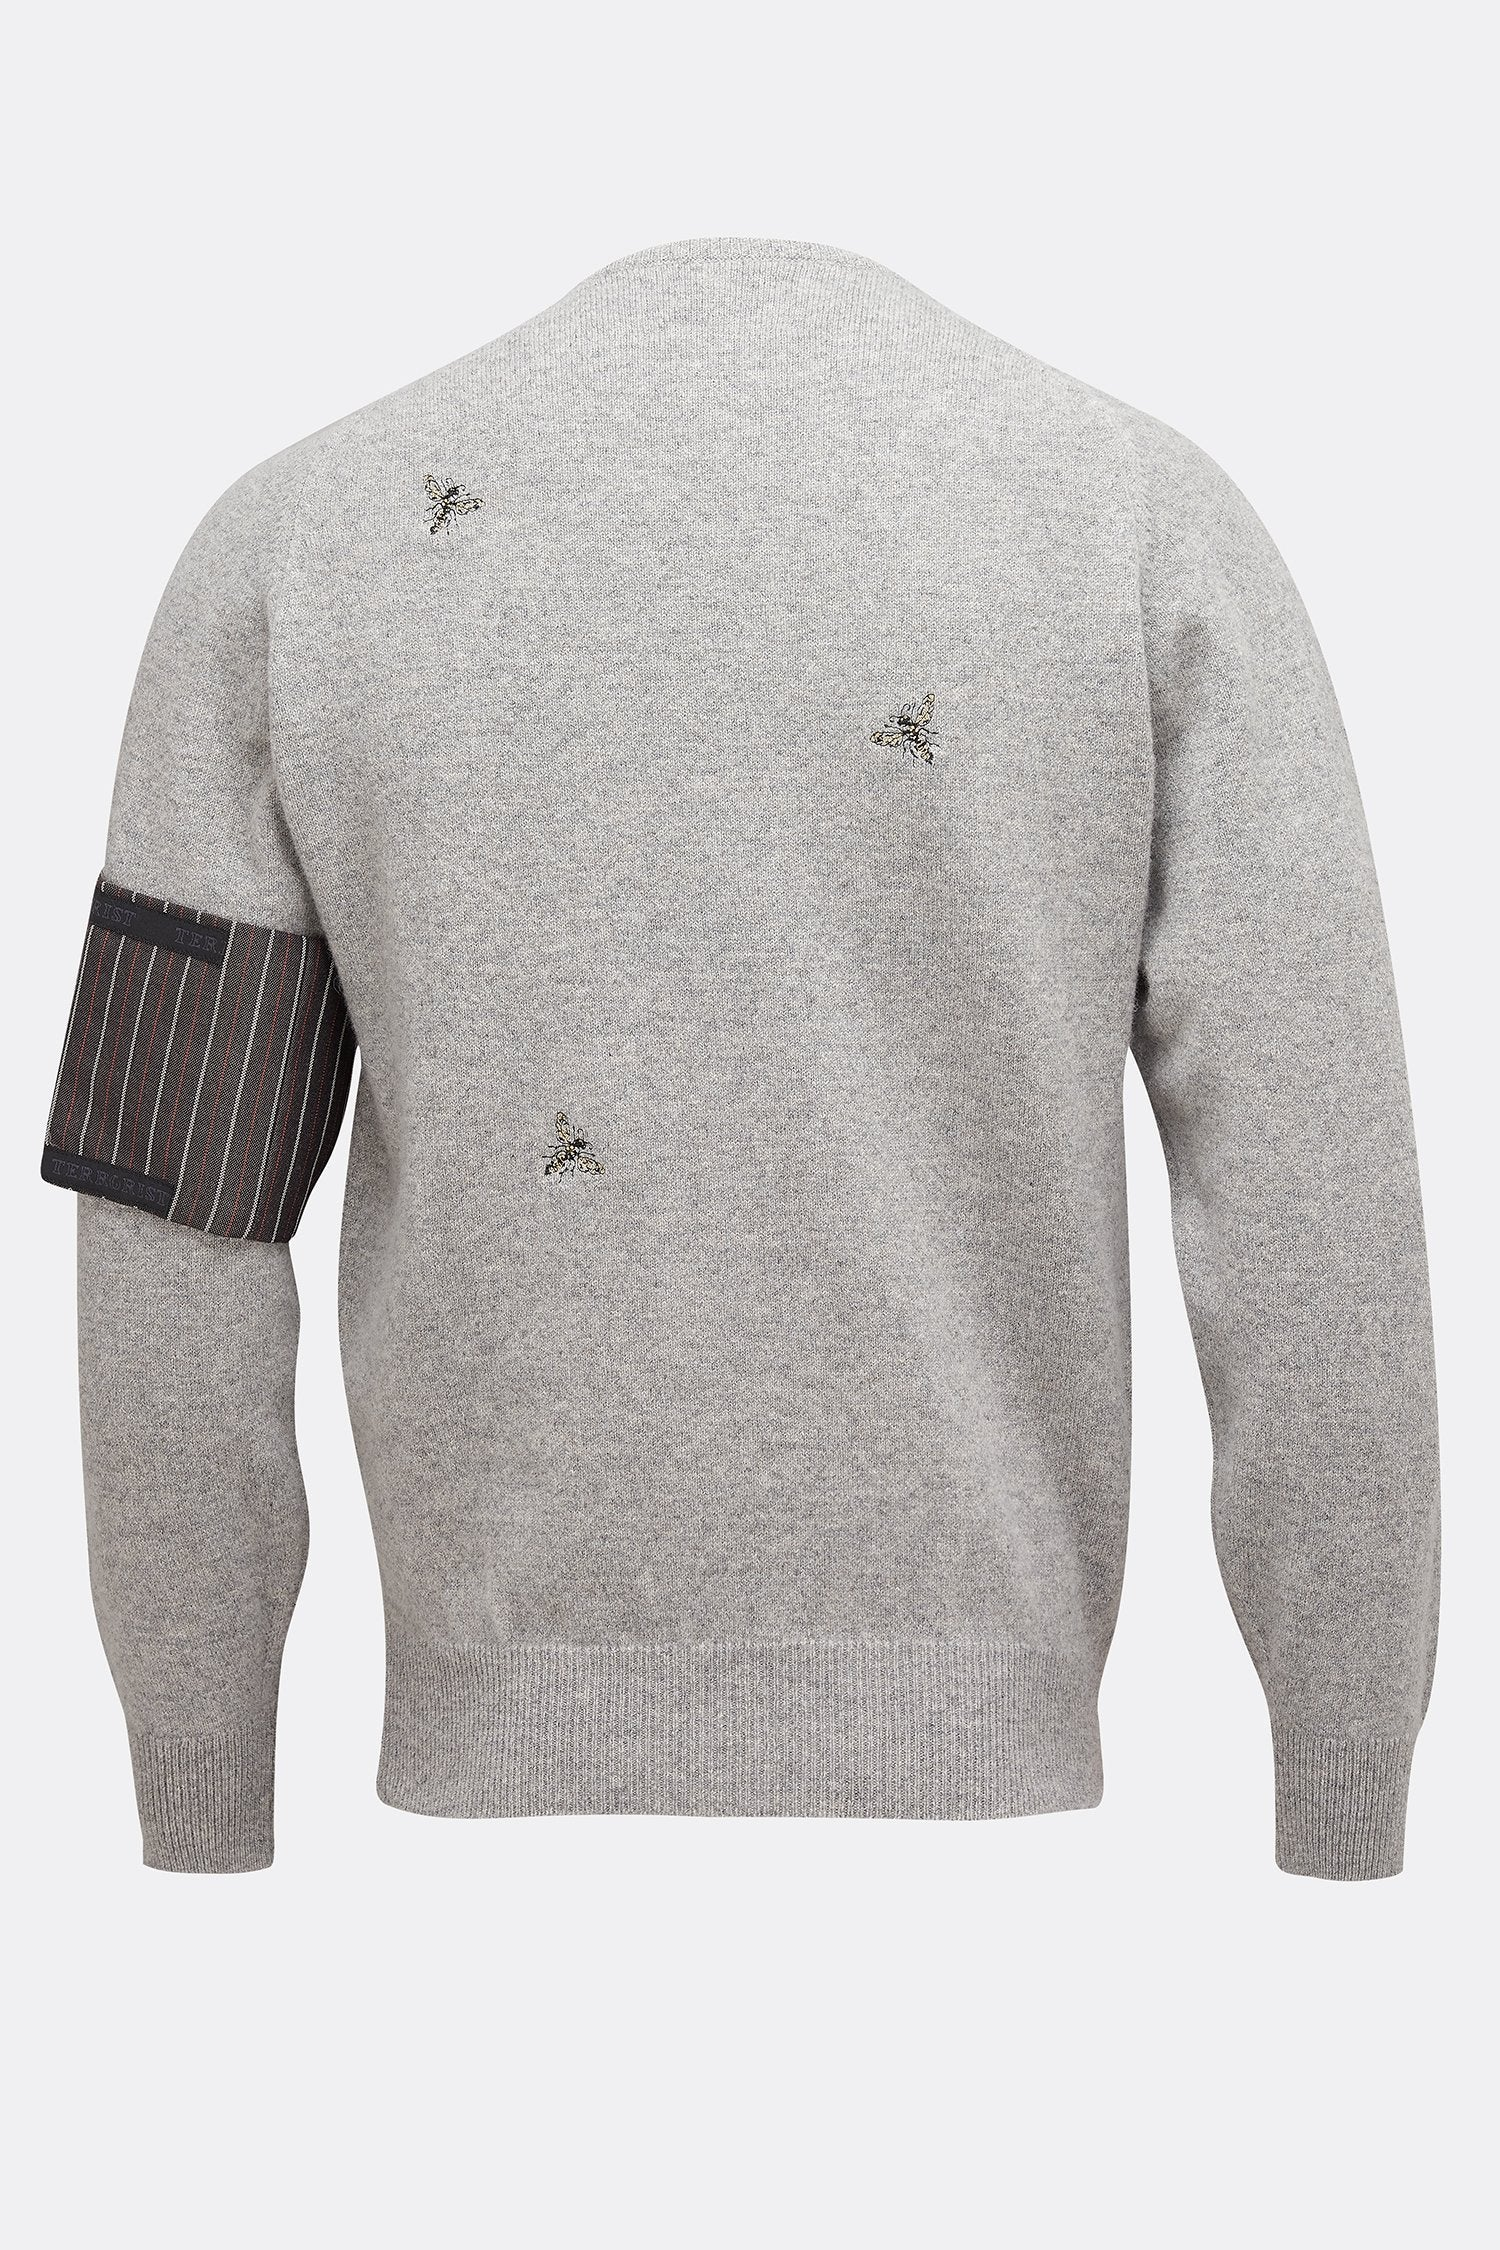 MULTI WASP JUMPER IN GREY-menswear-A Child Of The Jago